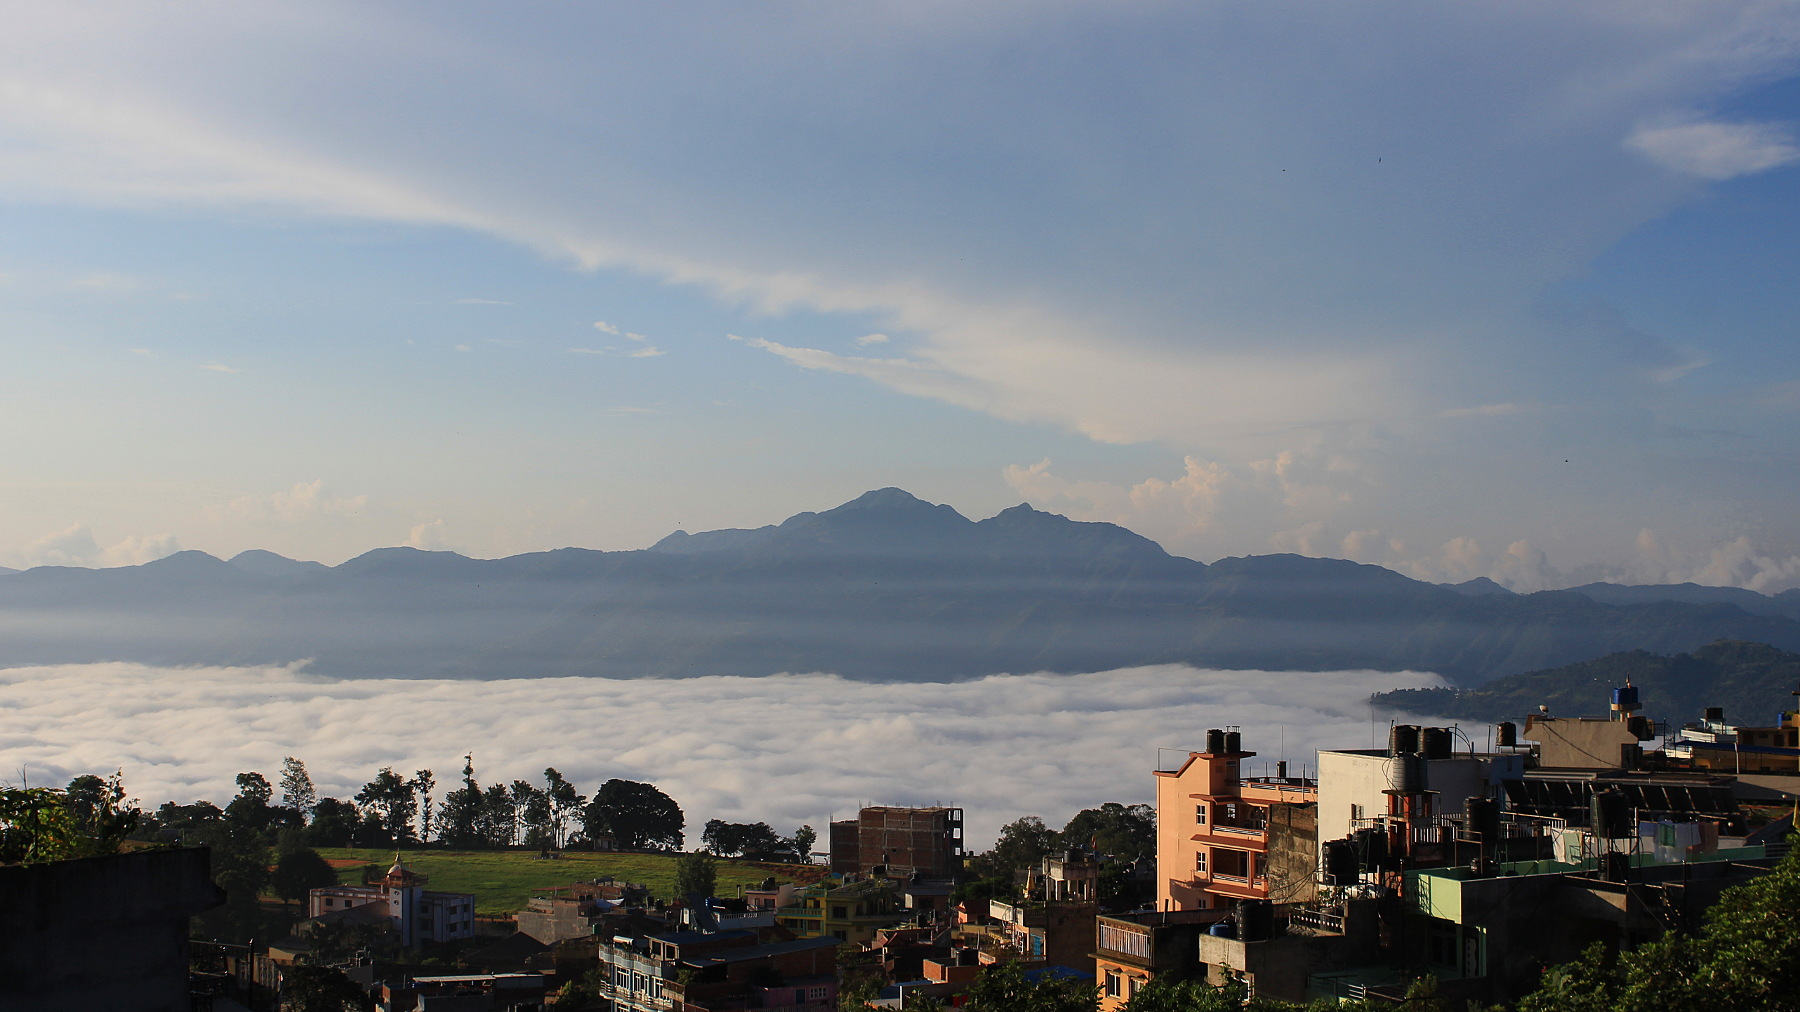 Sunrise from Tansen, Palpa. The valley below is covered with clouds, but the sky above is mostly clear. Tansen Nepal.